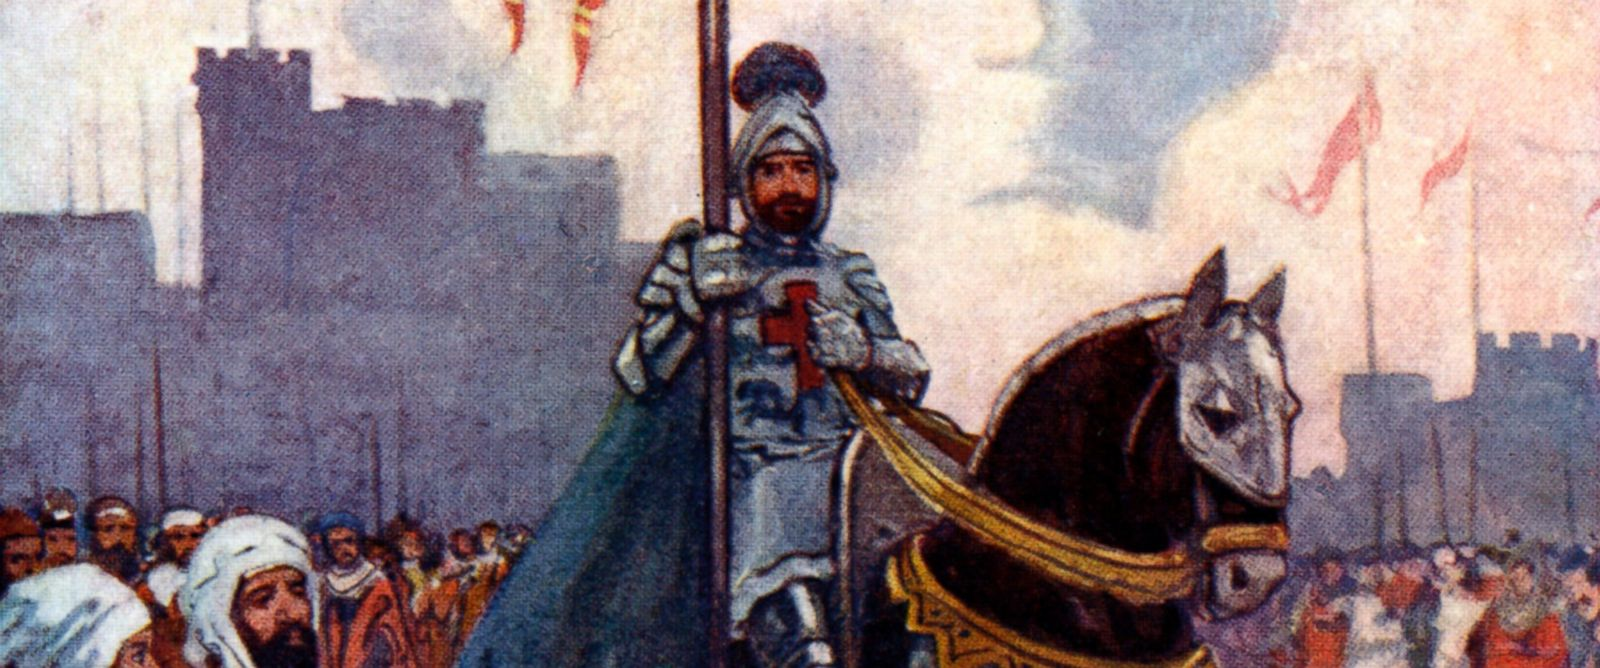 """PHOTO: An illustration from """"Our Island Story"""" by H.E. Marshall, showing King Richard I, known as Richard the Lionheart."""